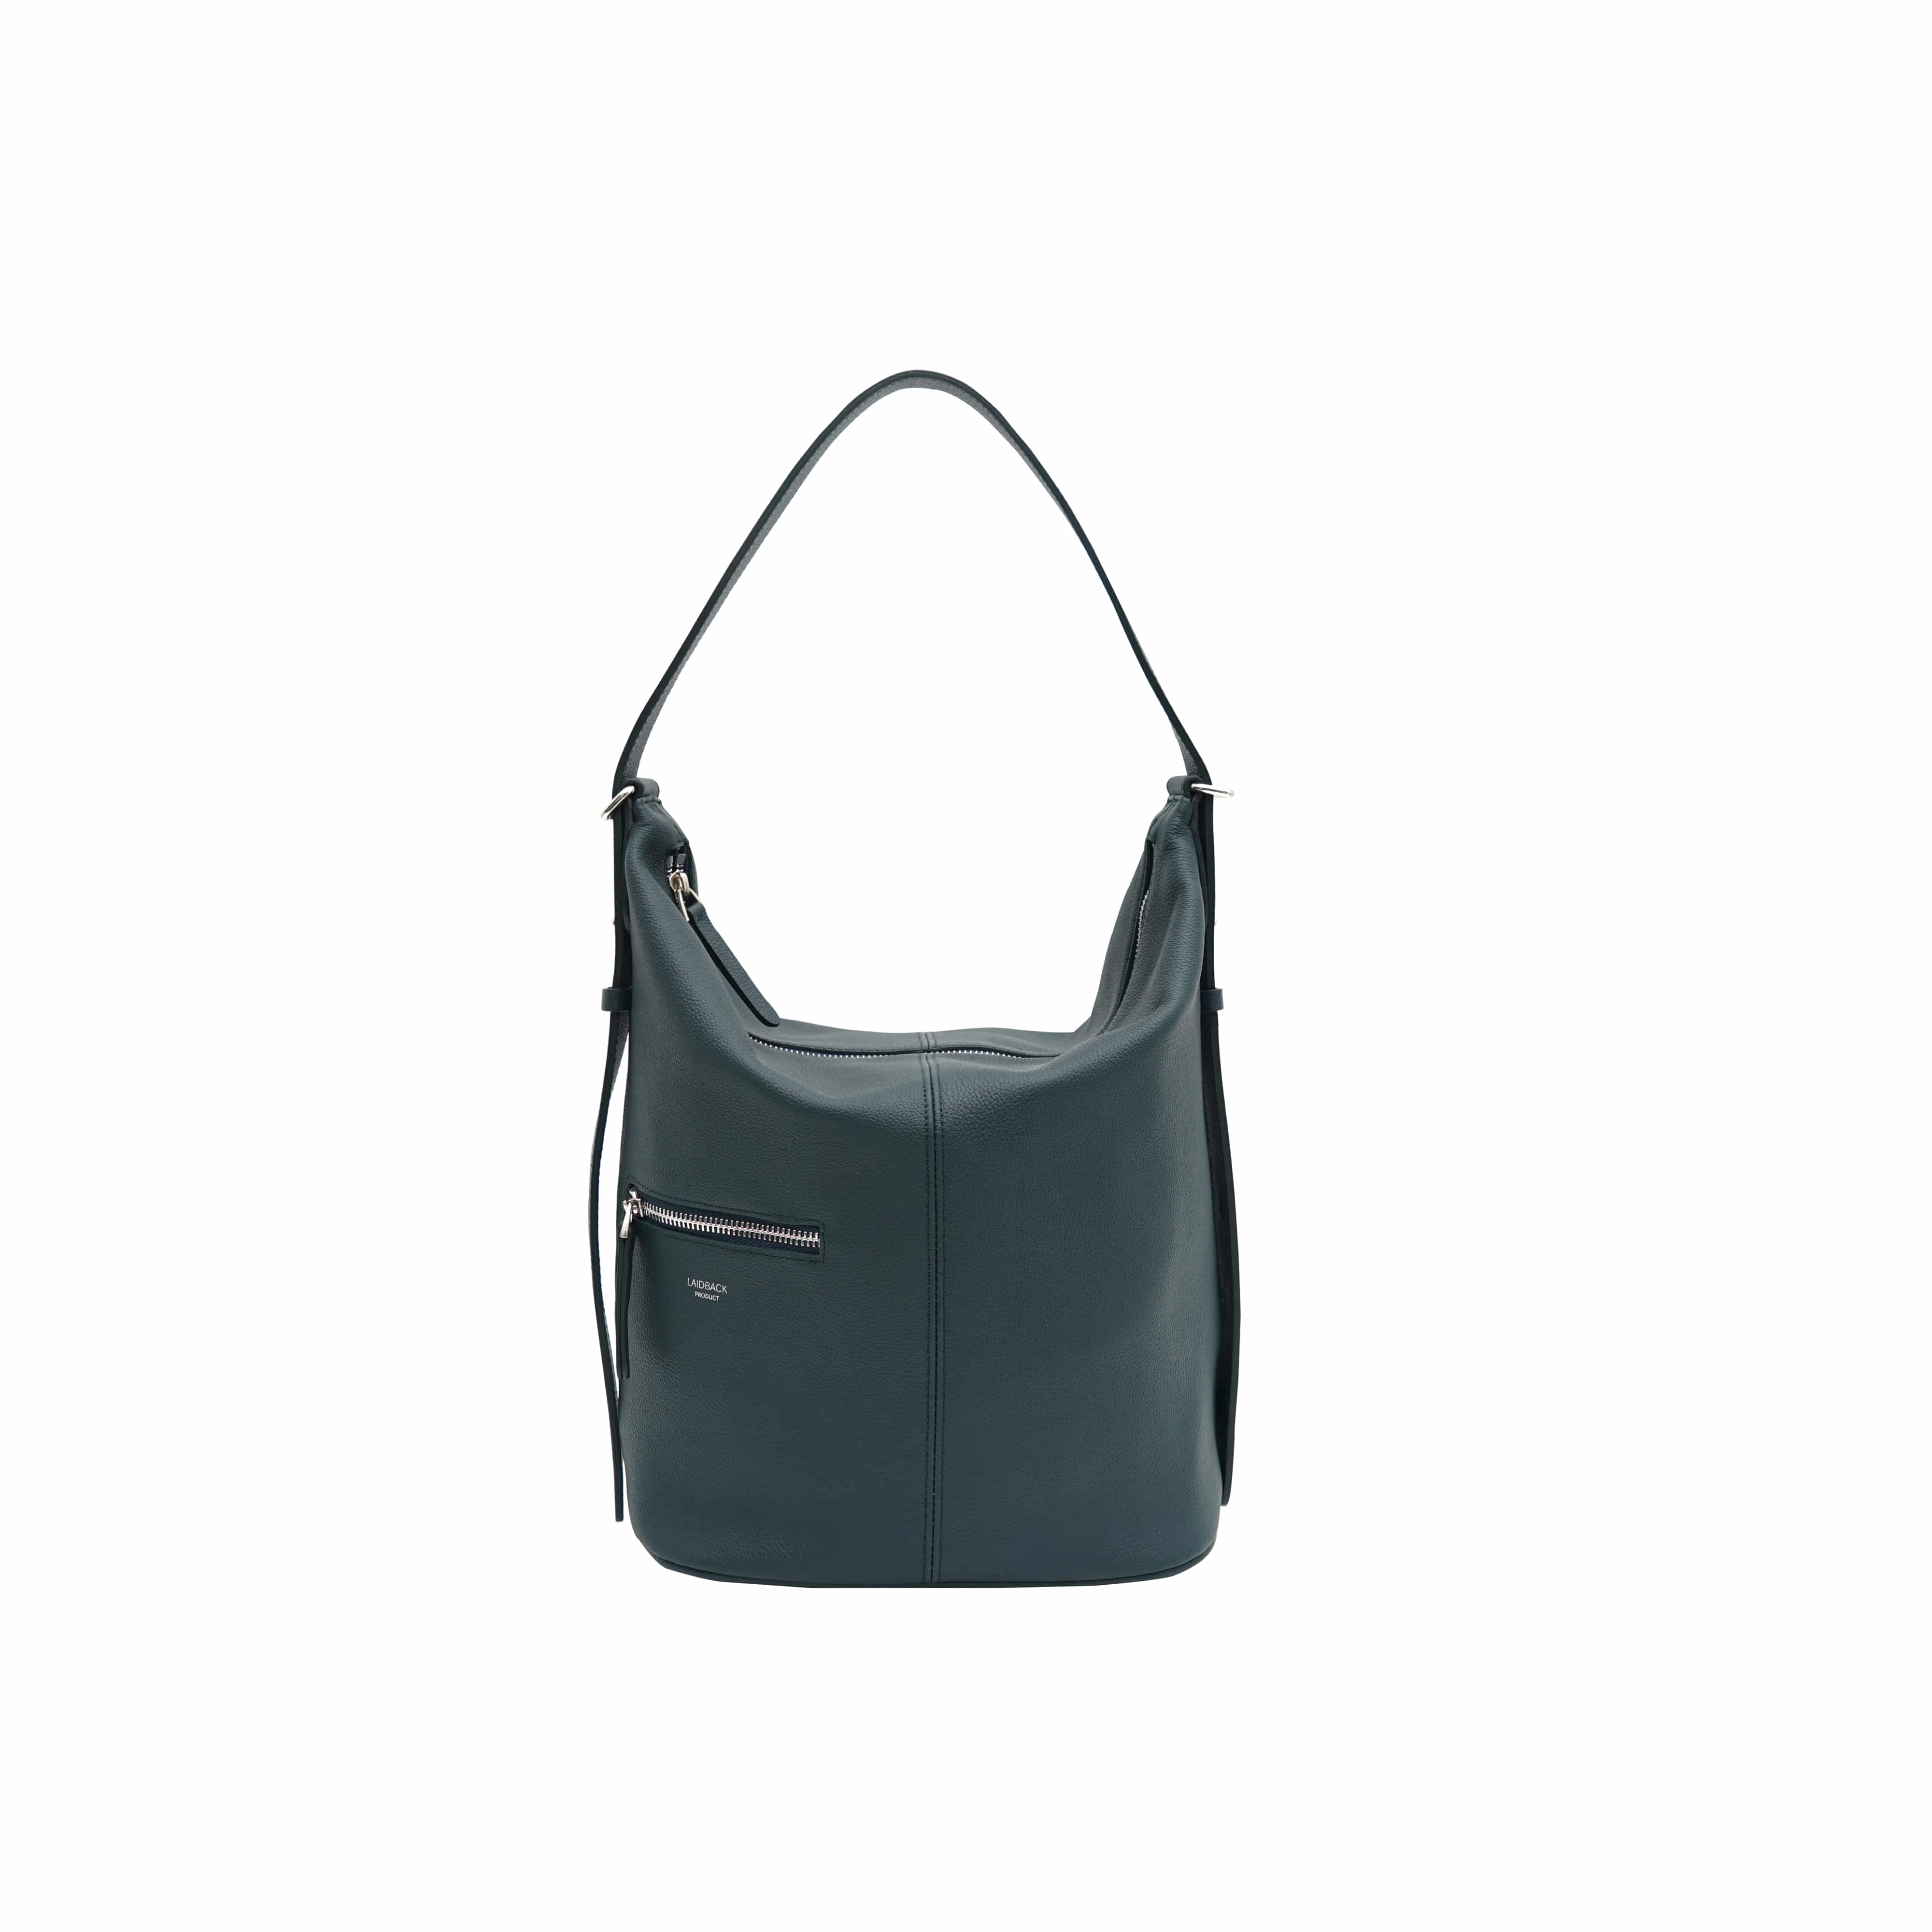 HAVE bag / deep green